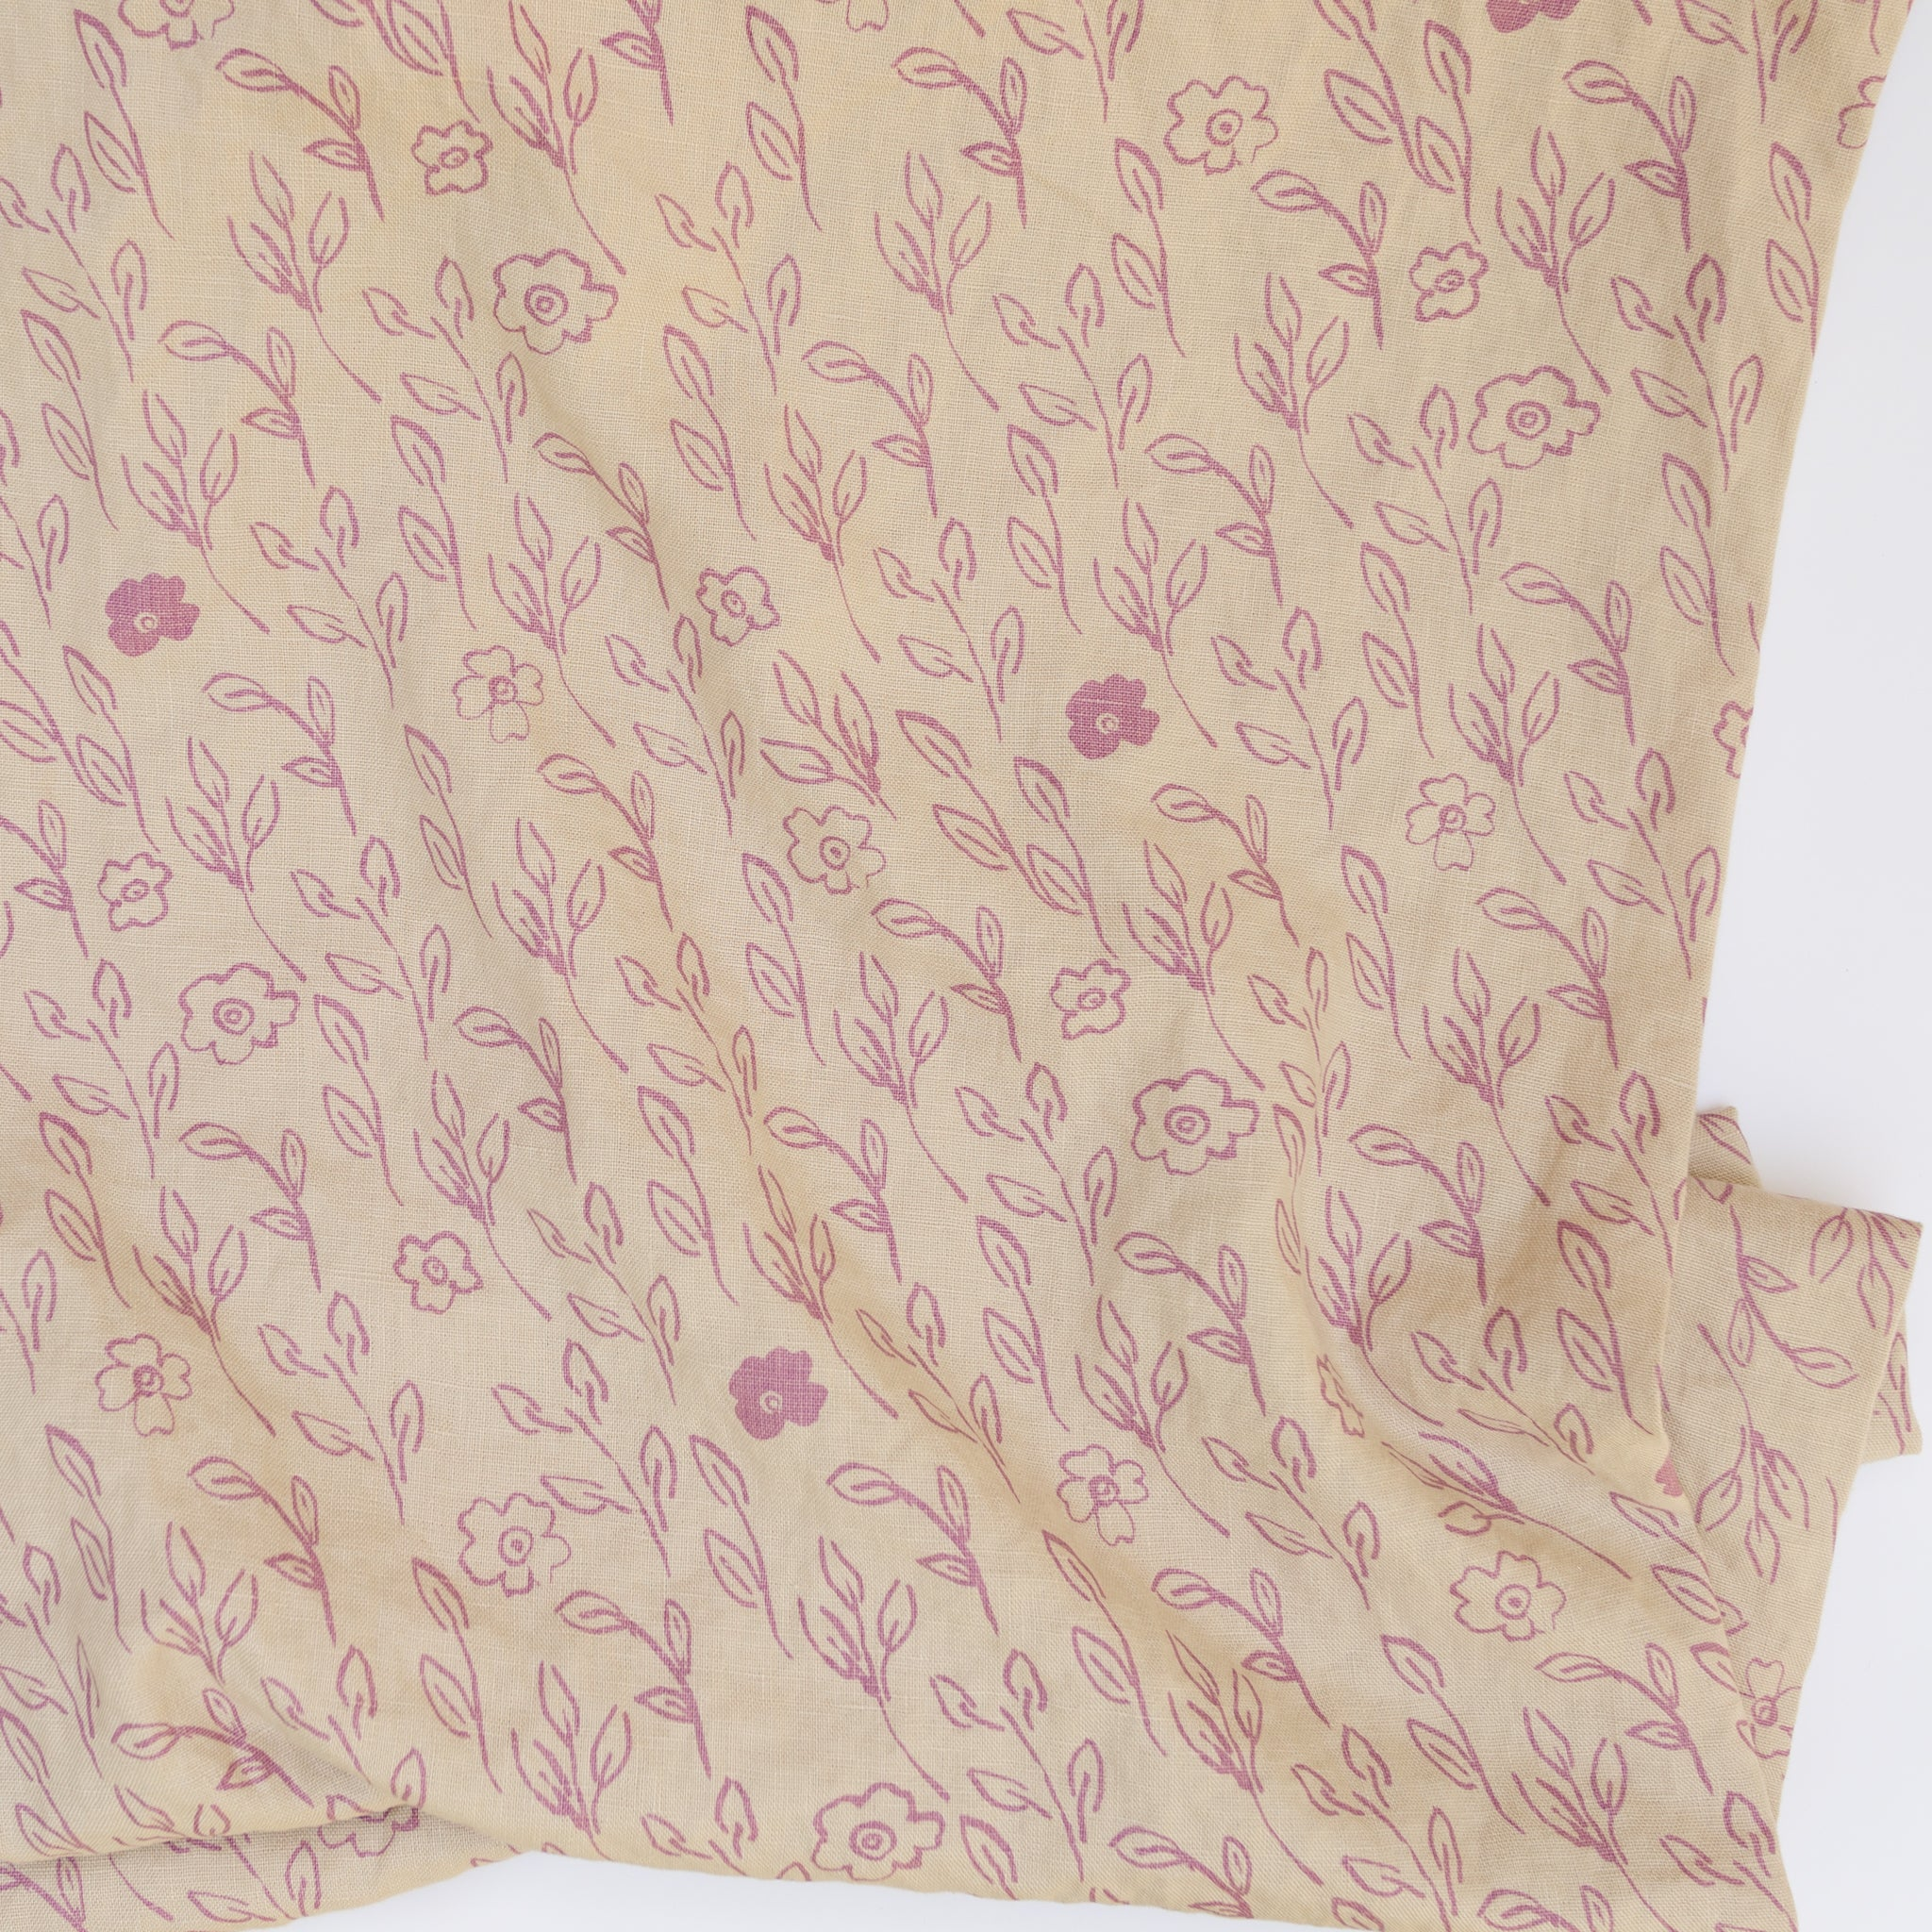 Briar printed in Mallow on linen by Sara Parker Textiles